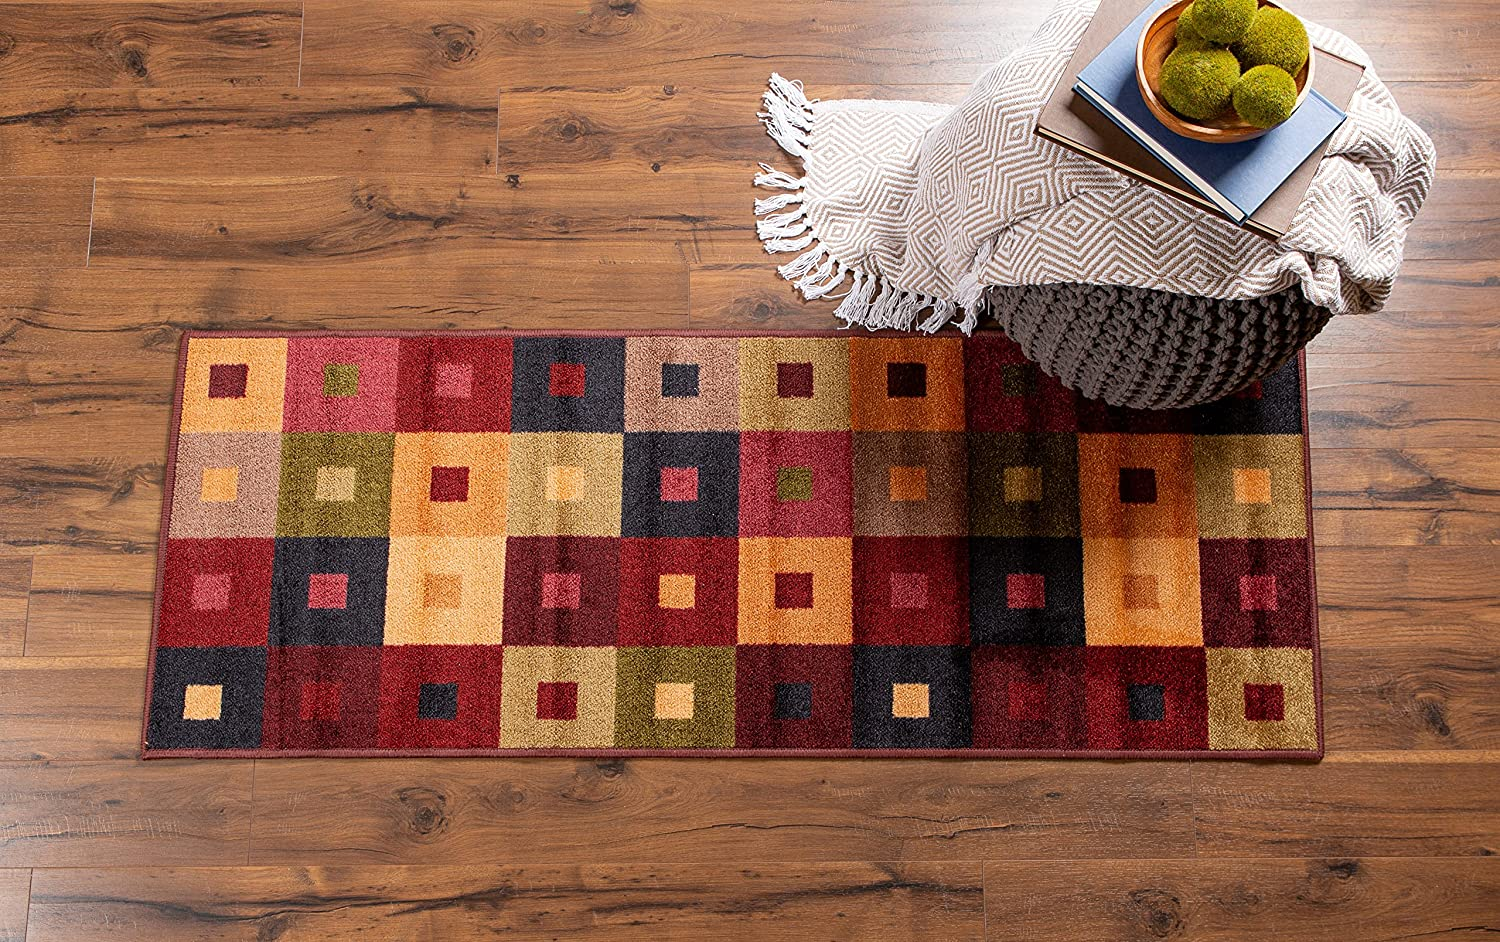 24x72 Office-Multi Stripe 24x72 J /& M Home Fashions 10351A Loft Wash Room Fashion Contemporary Runner Living Room Nursery Kitchen Laundry Perfect for Bedroom